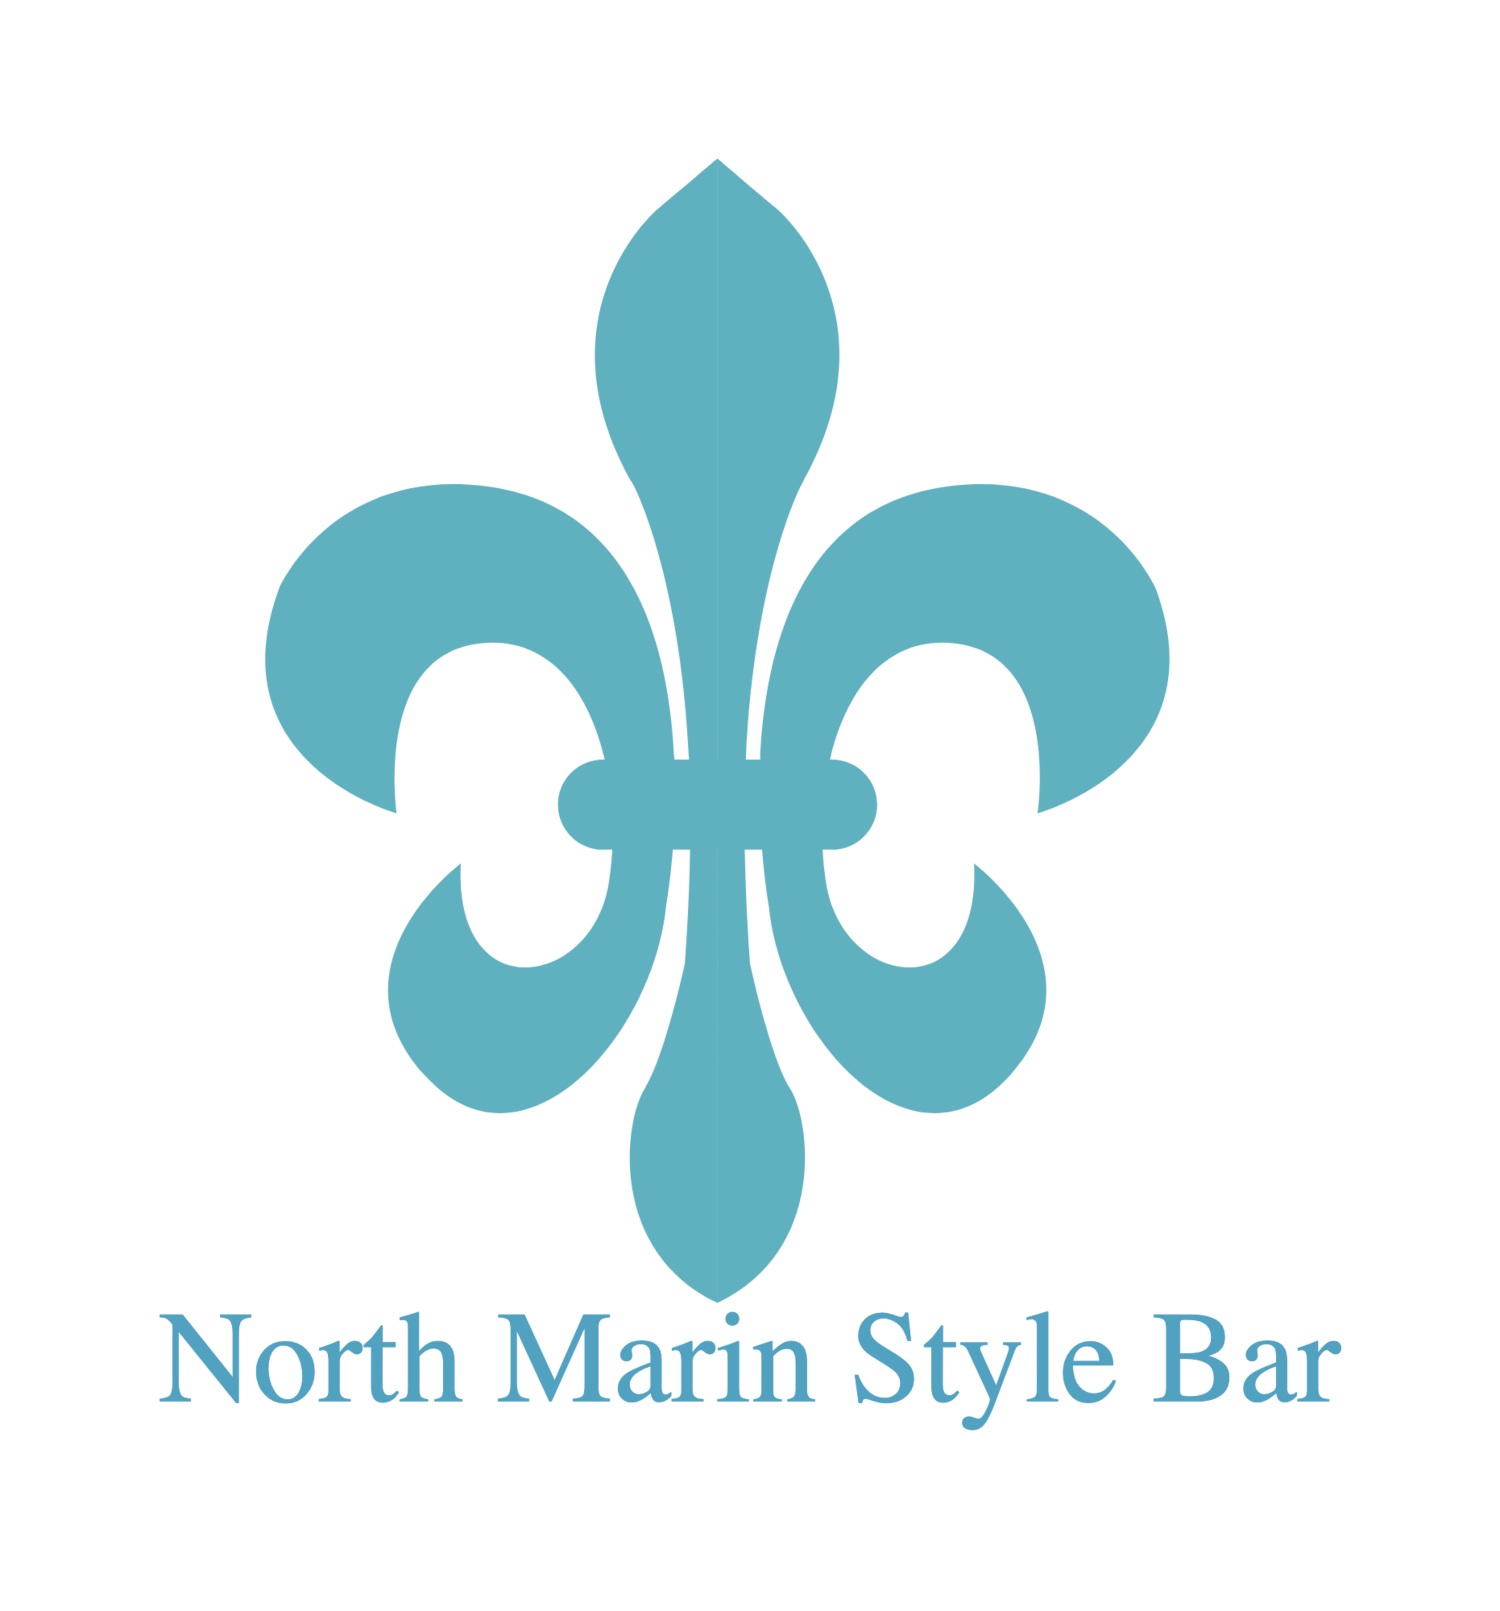 North Marin Style Bar